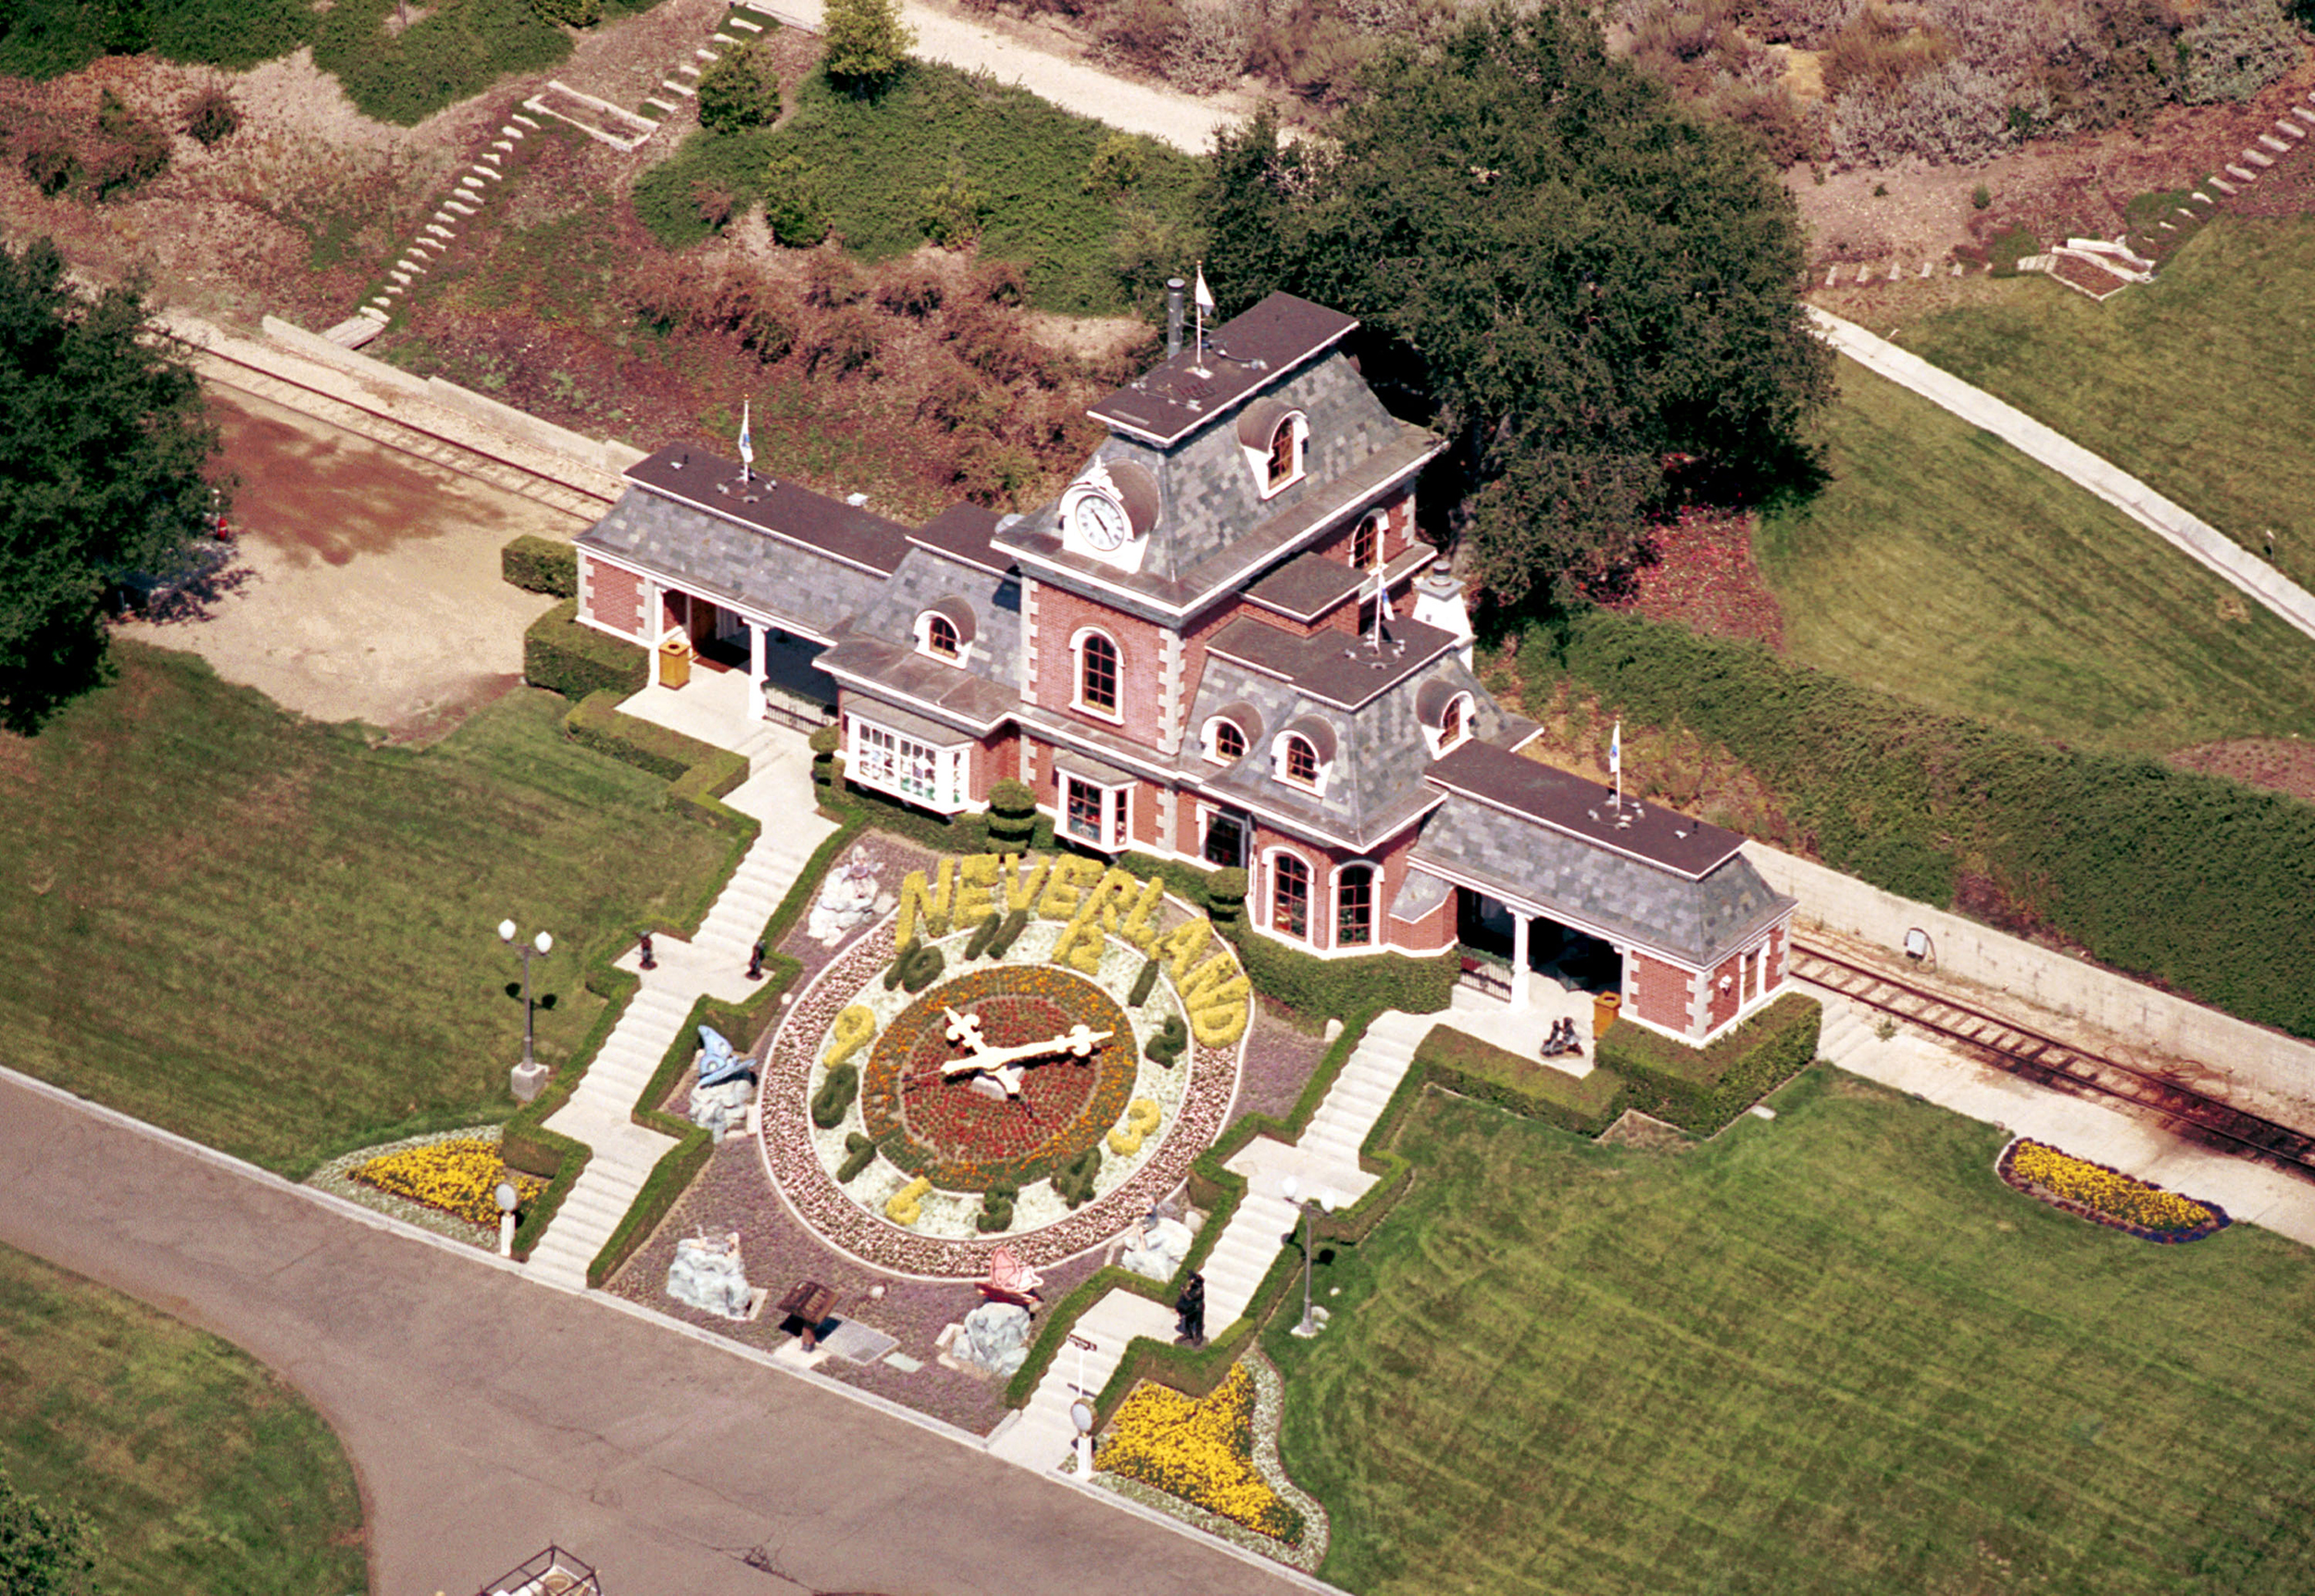 Business News - Neverland Ranch Up For Sale Again